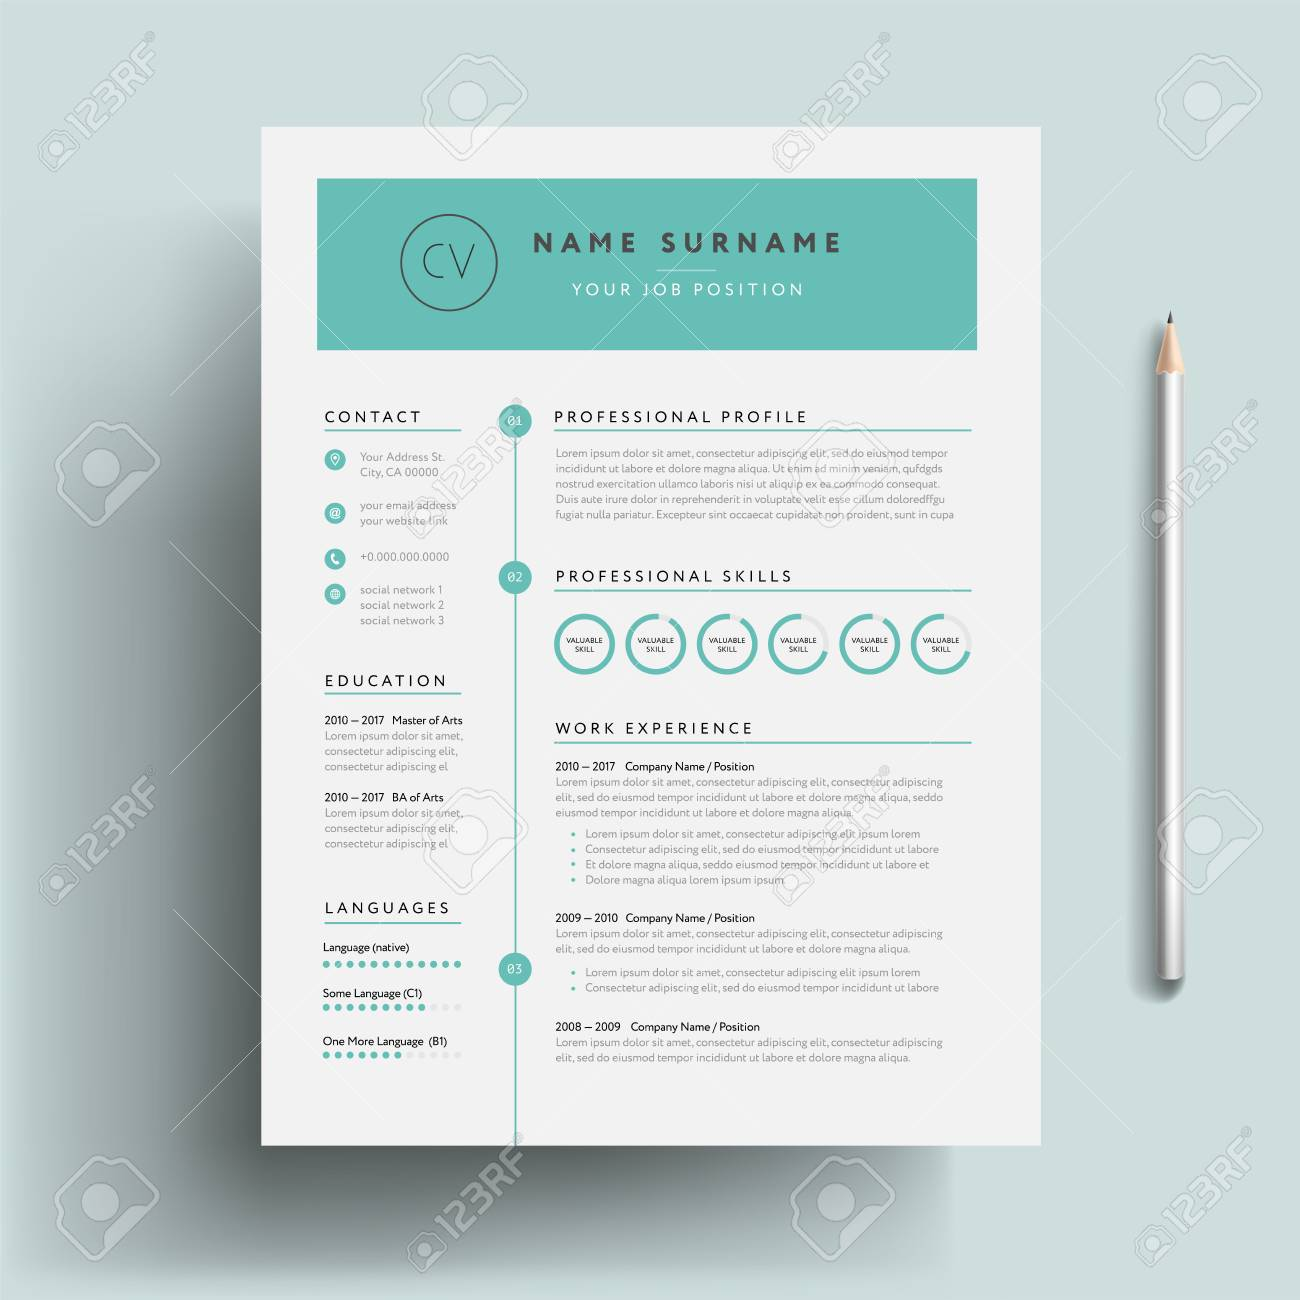 Creative CV or resume template teal green background color cool..